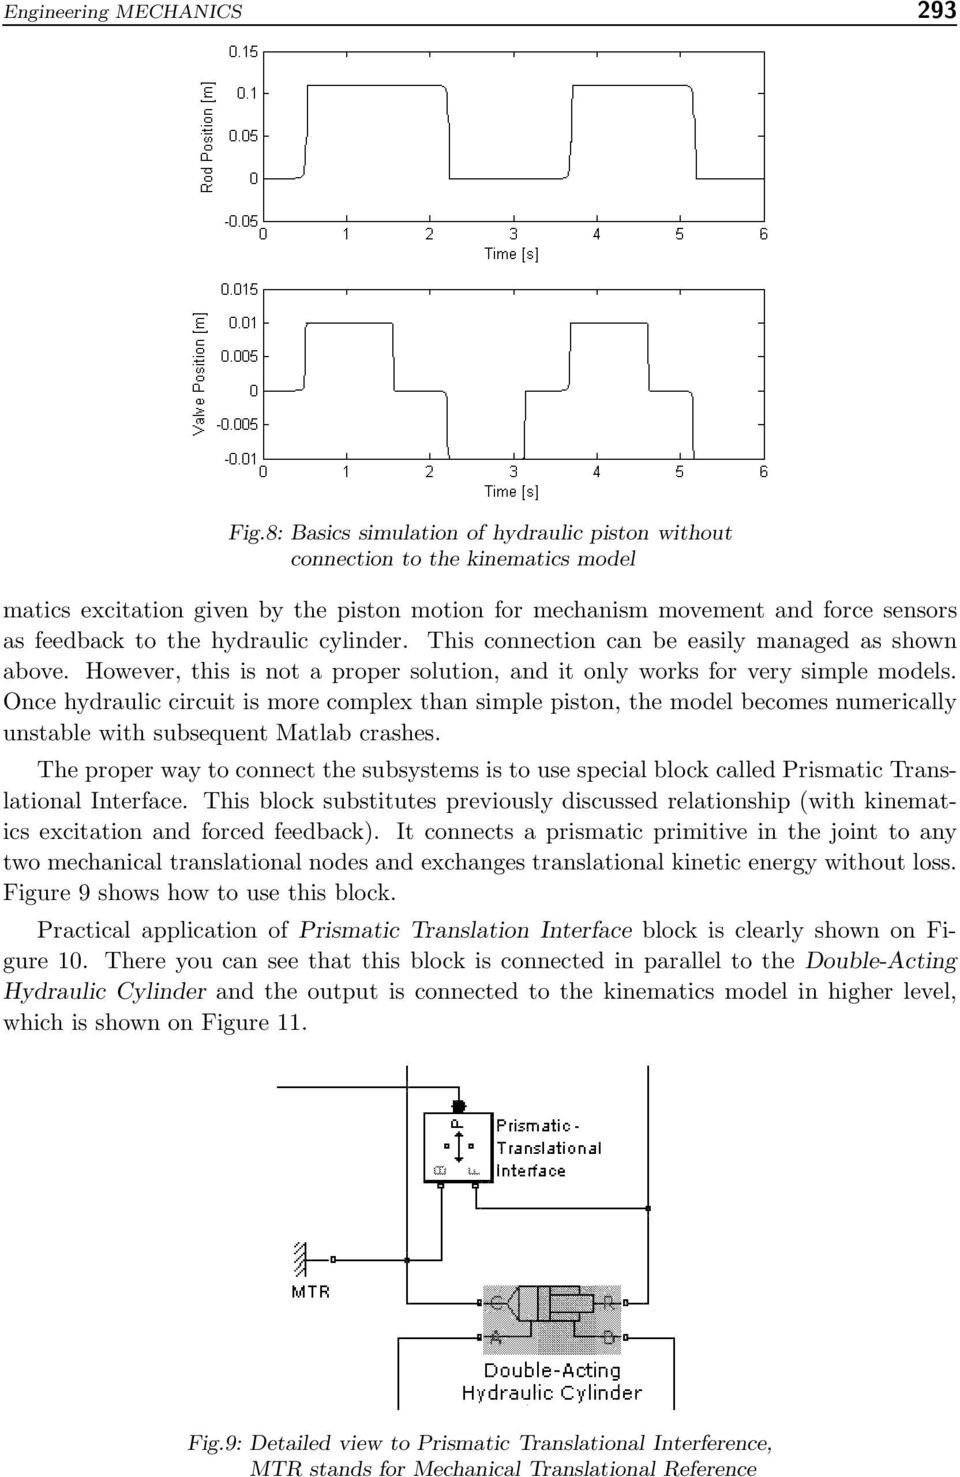 Hydraulic Arm Modeling Via Matlab Simhydraulics Pdf Simple Diagram Circuit Basic Cylinder This Connection Can Be Easily Managed As Shown Above However Is